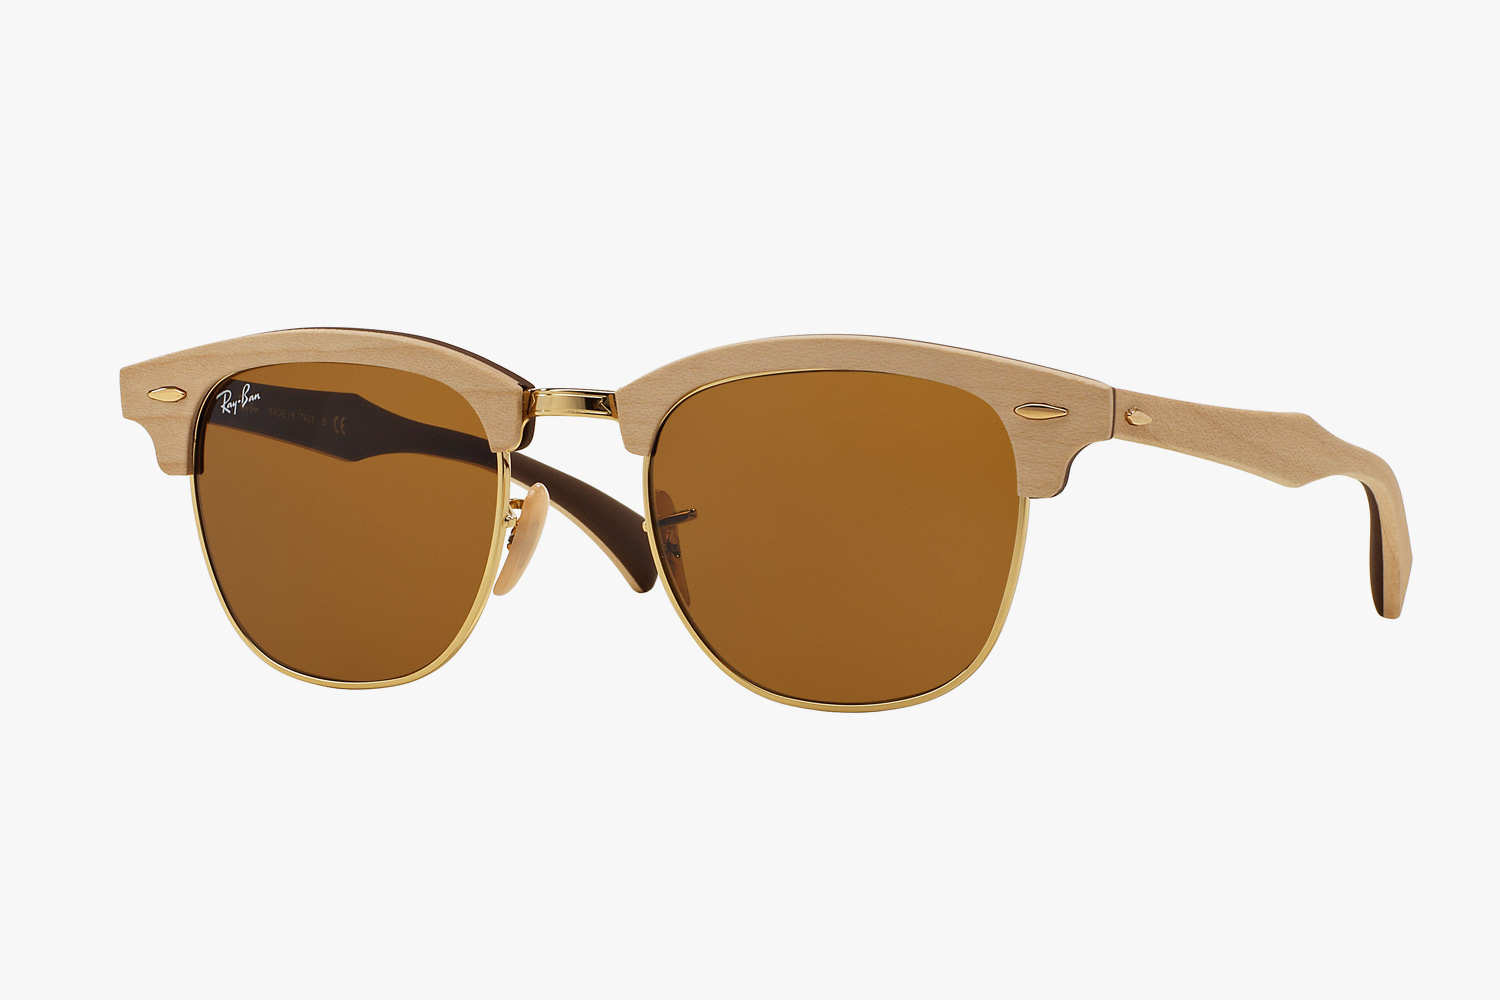 Ray-Ban-Wood-Clubmaster-Glasses-07